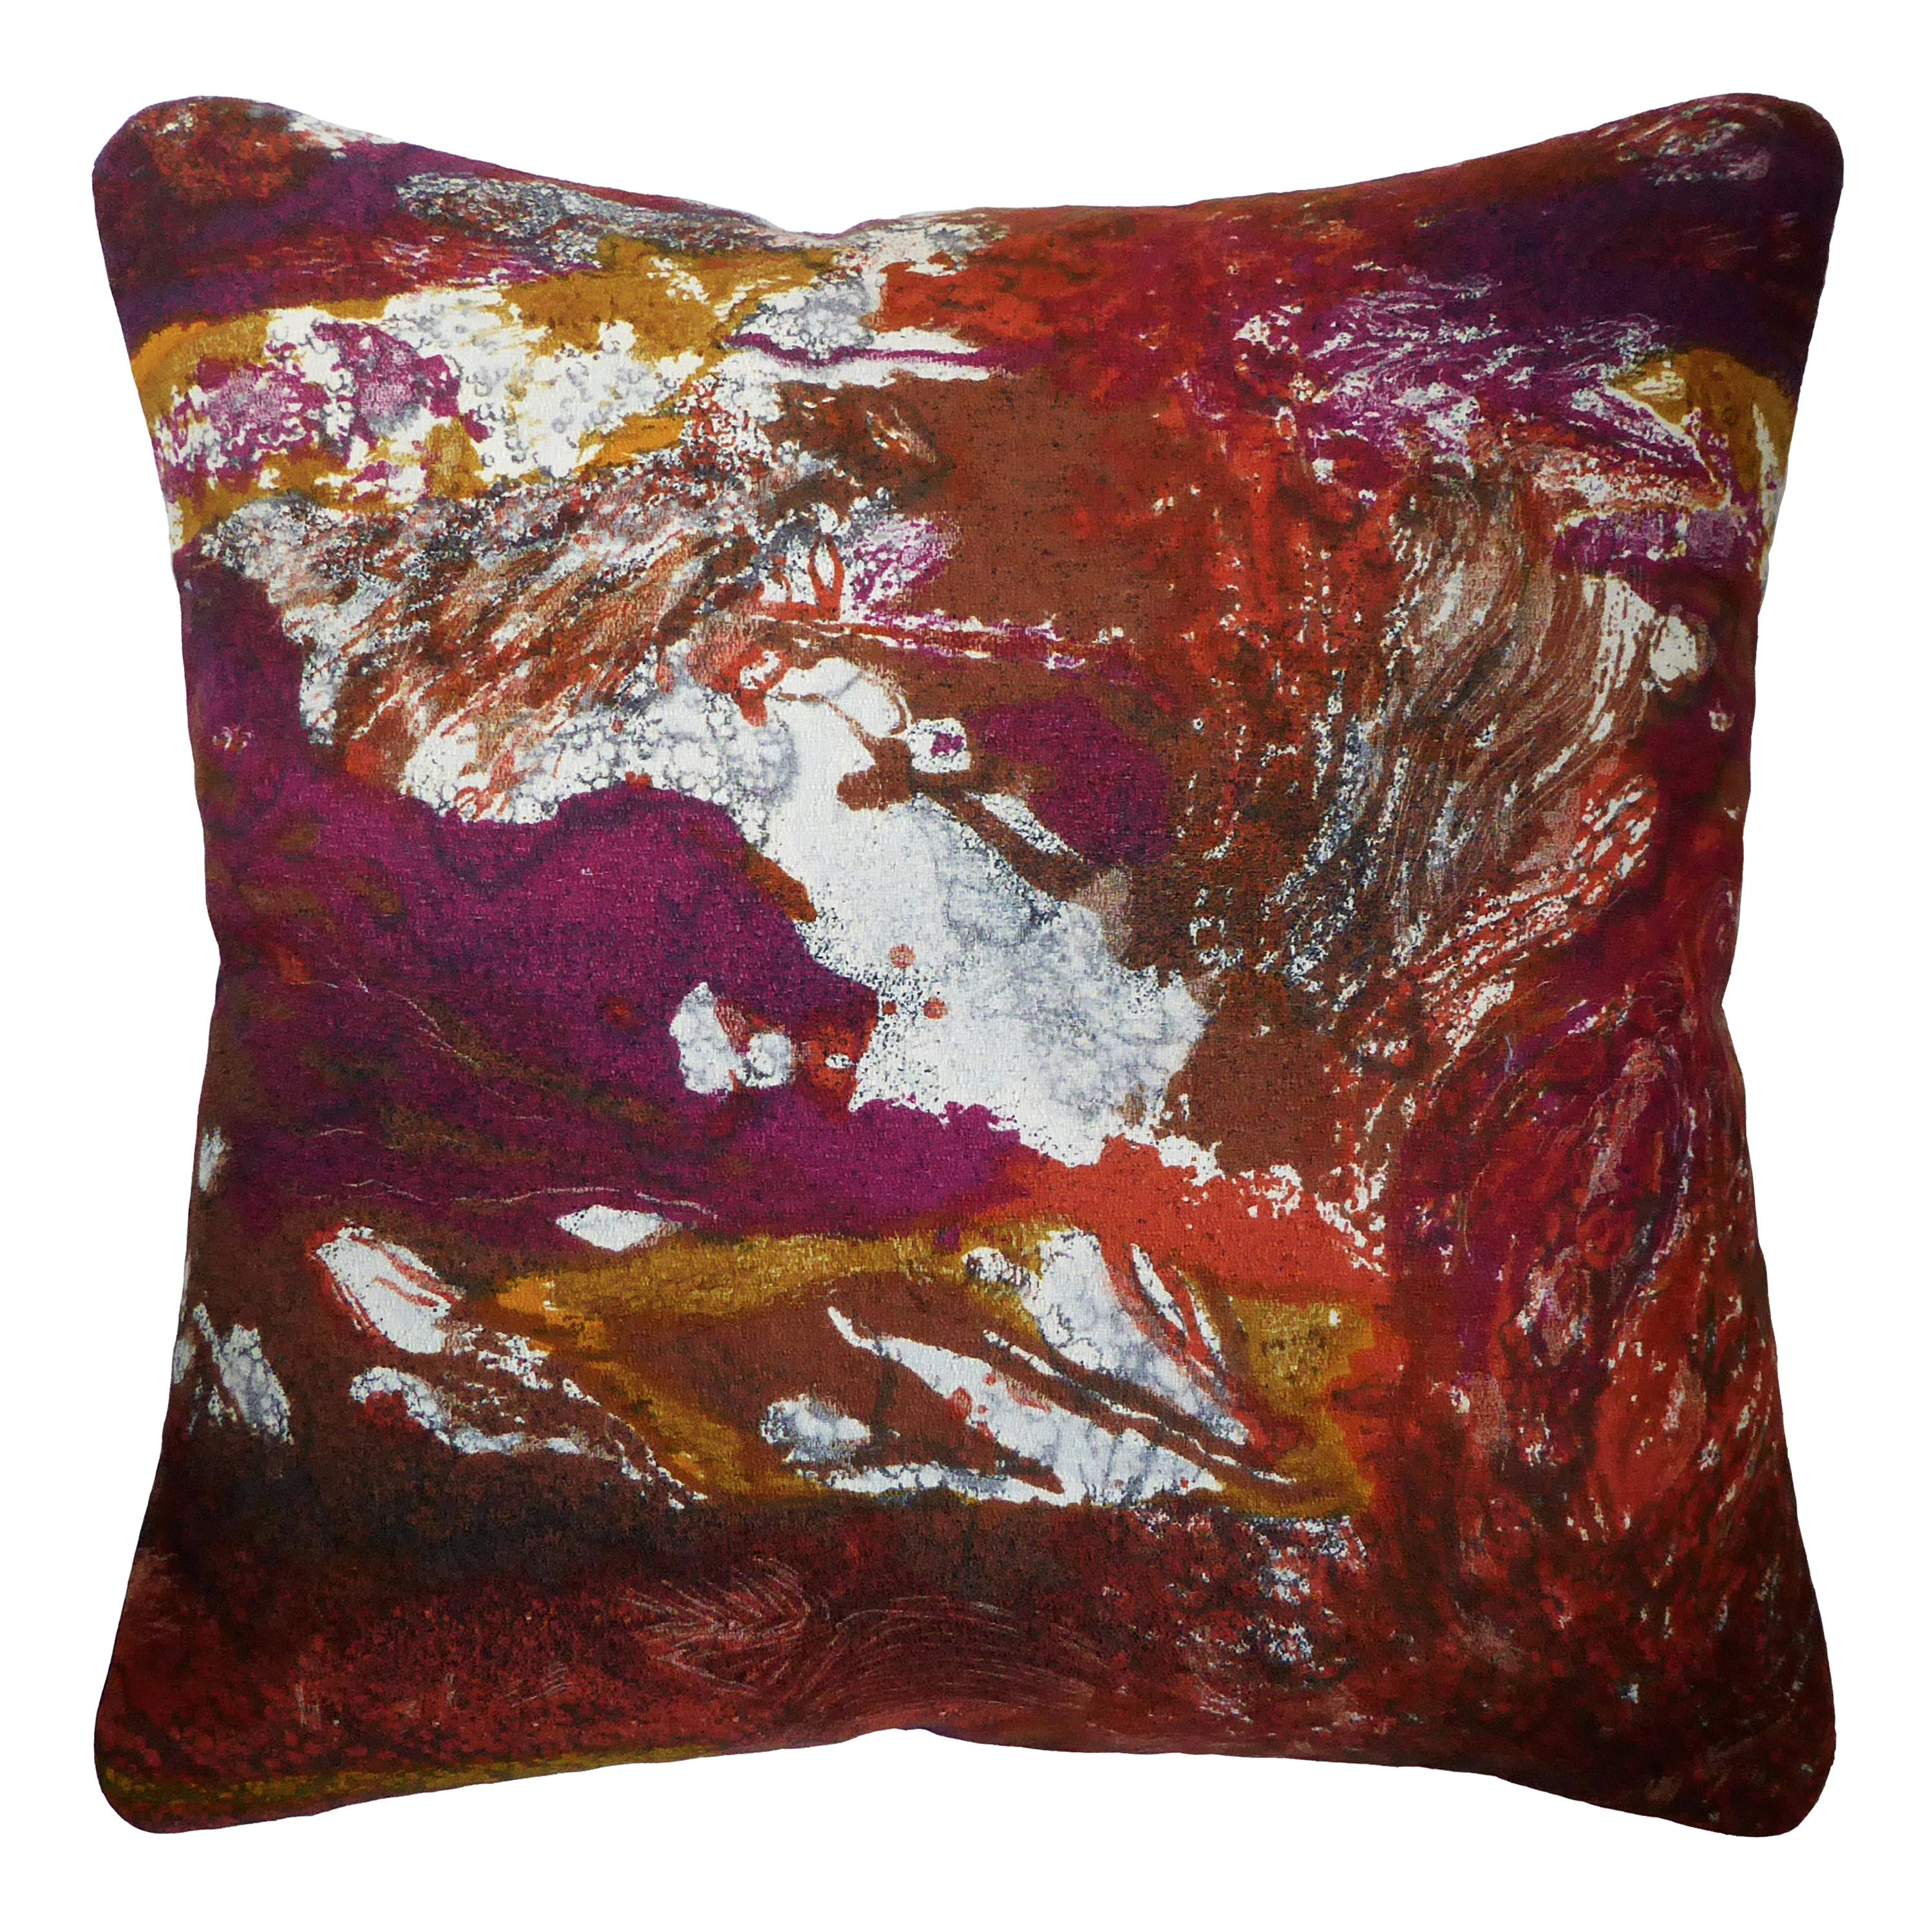 'Vintage Cushions' Luxury Bespoke-Made Pillow 'Tapa', Made in London